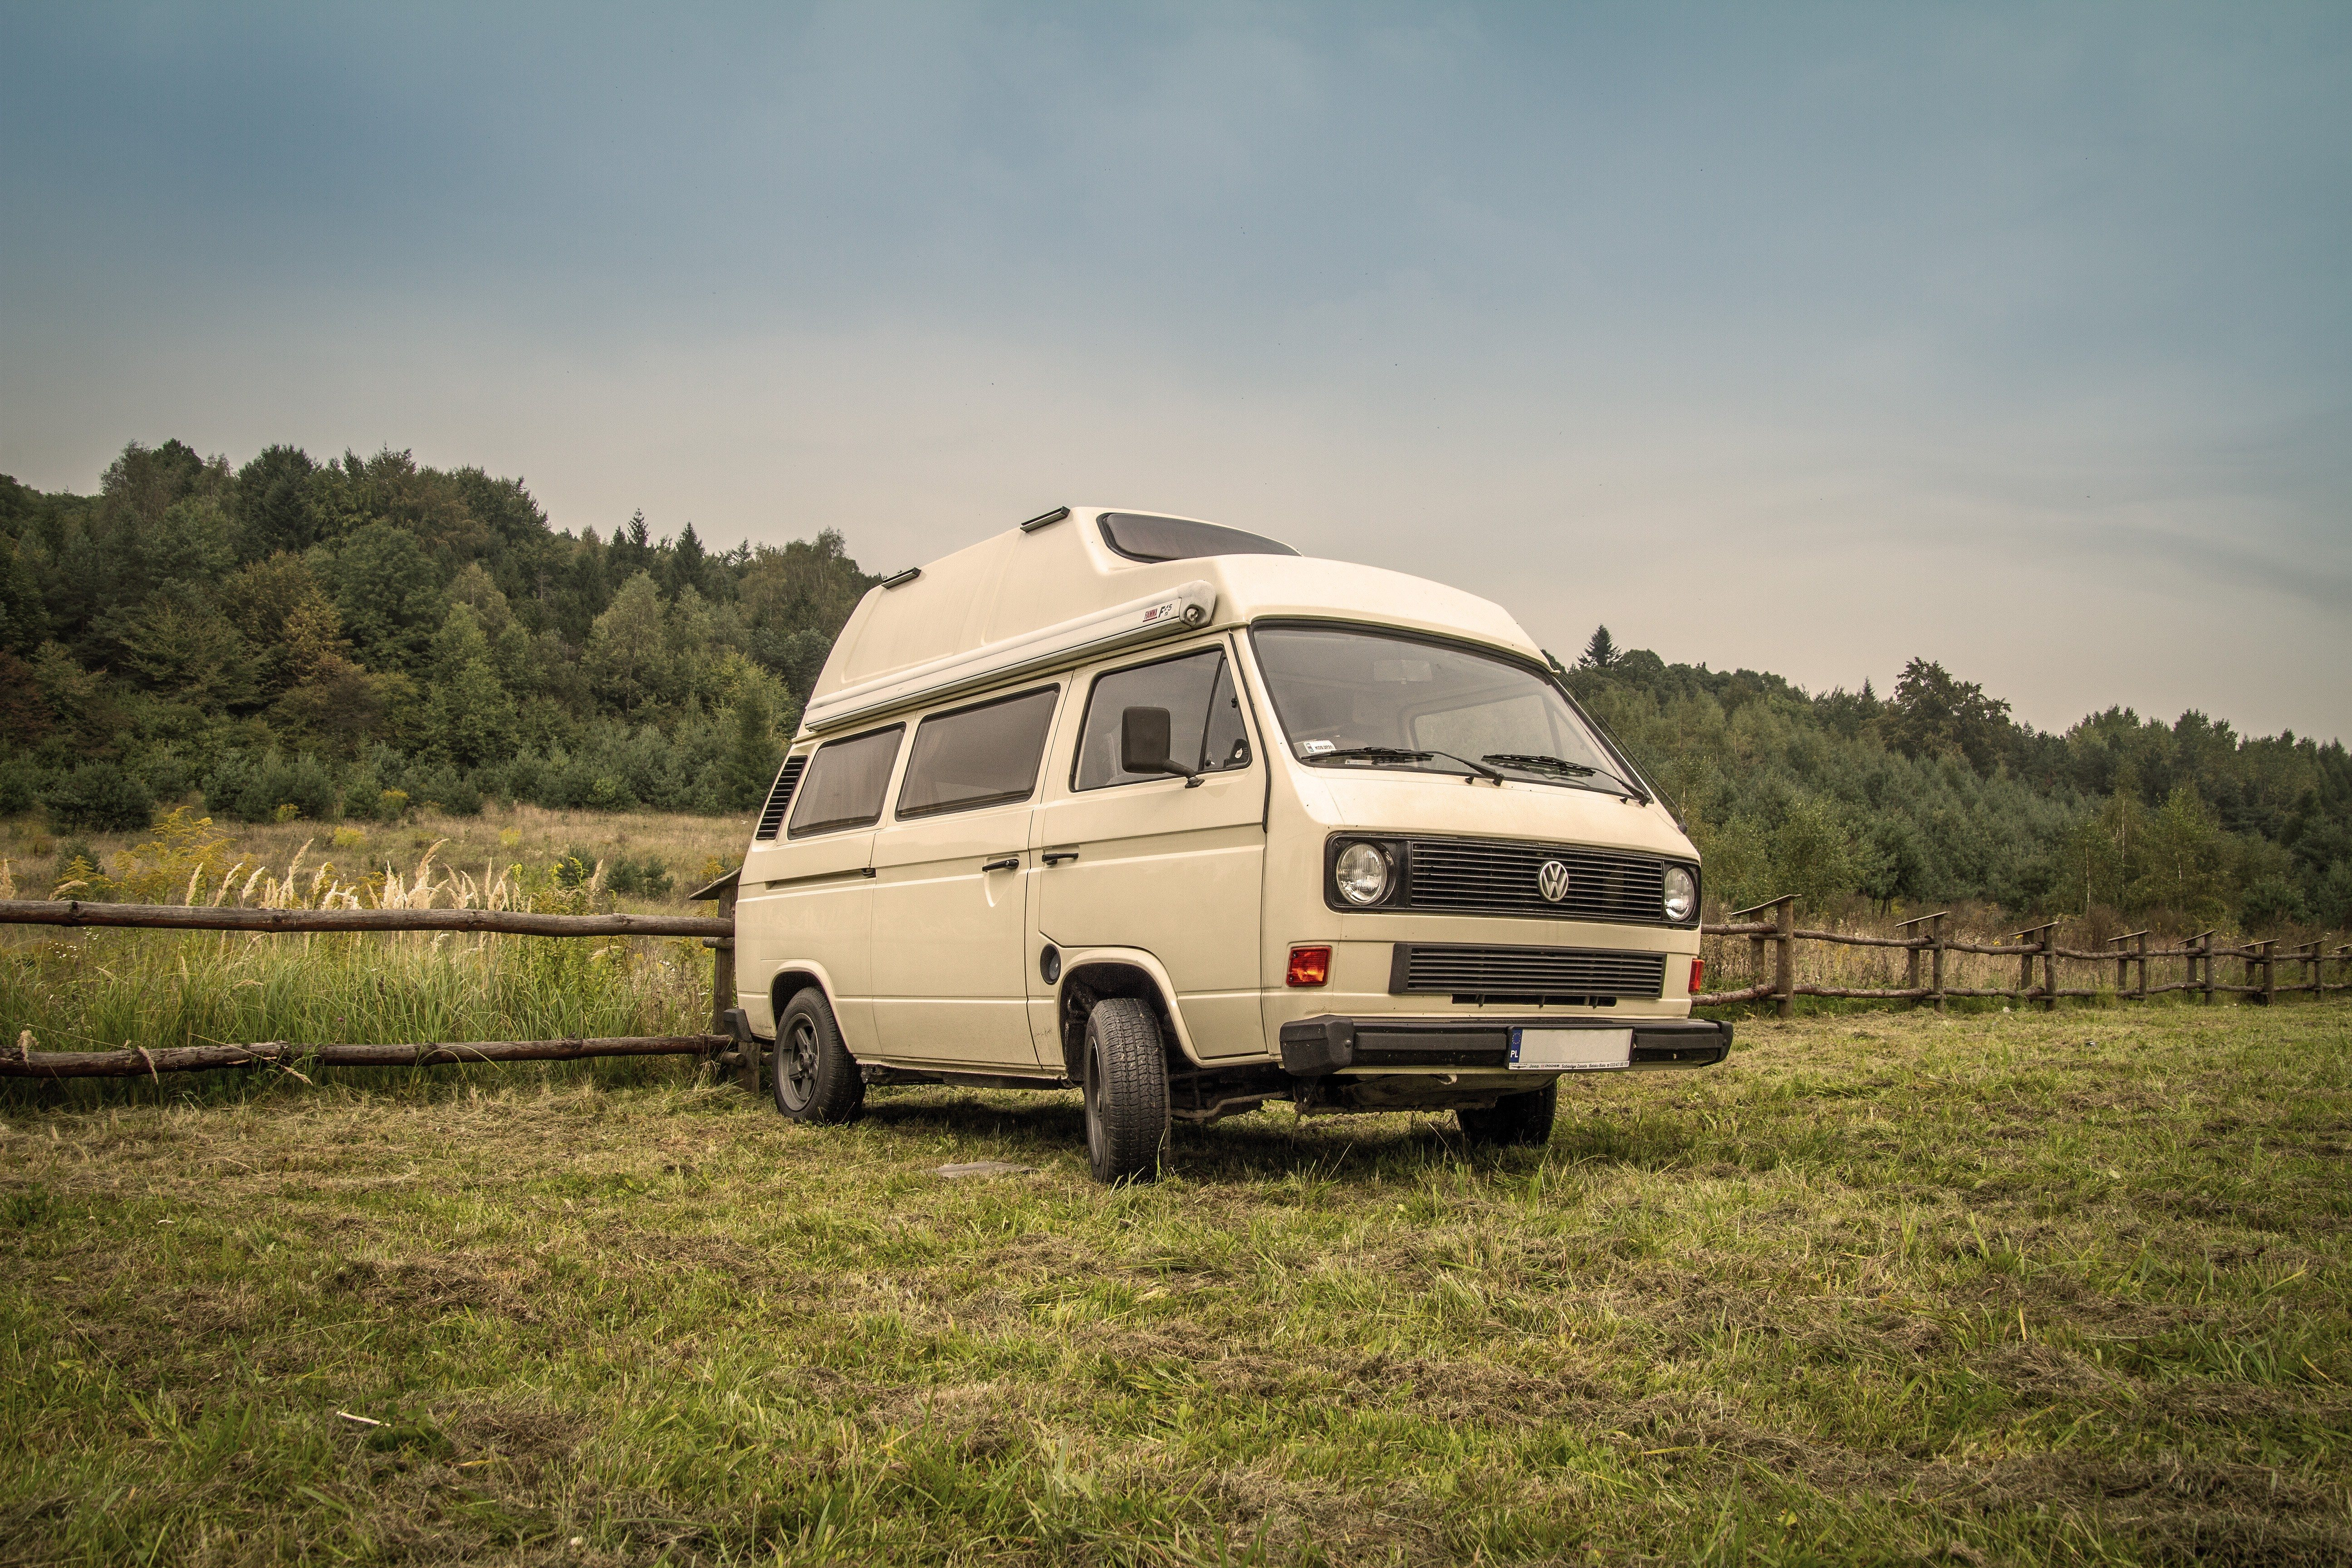 Volkswagen T3 Camper, Automobiles, Campers, Camping, Campsite, HQ Photo